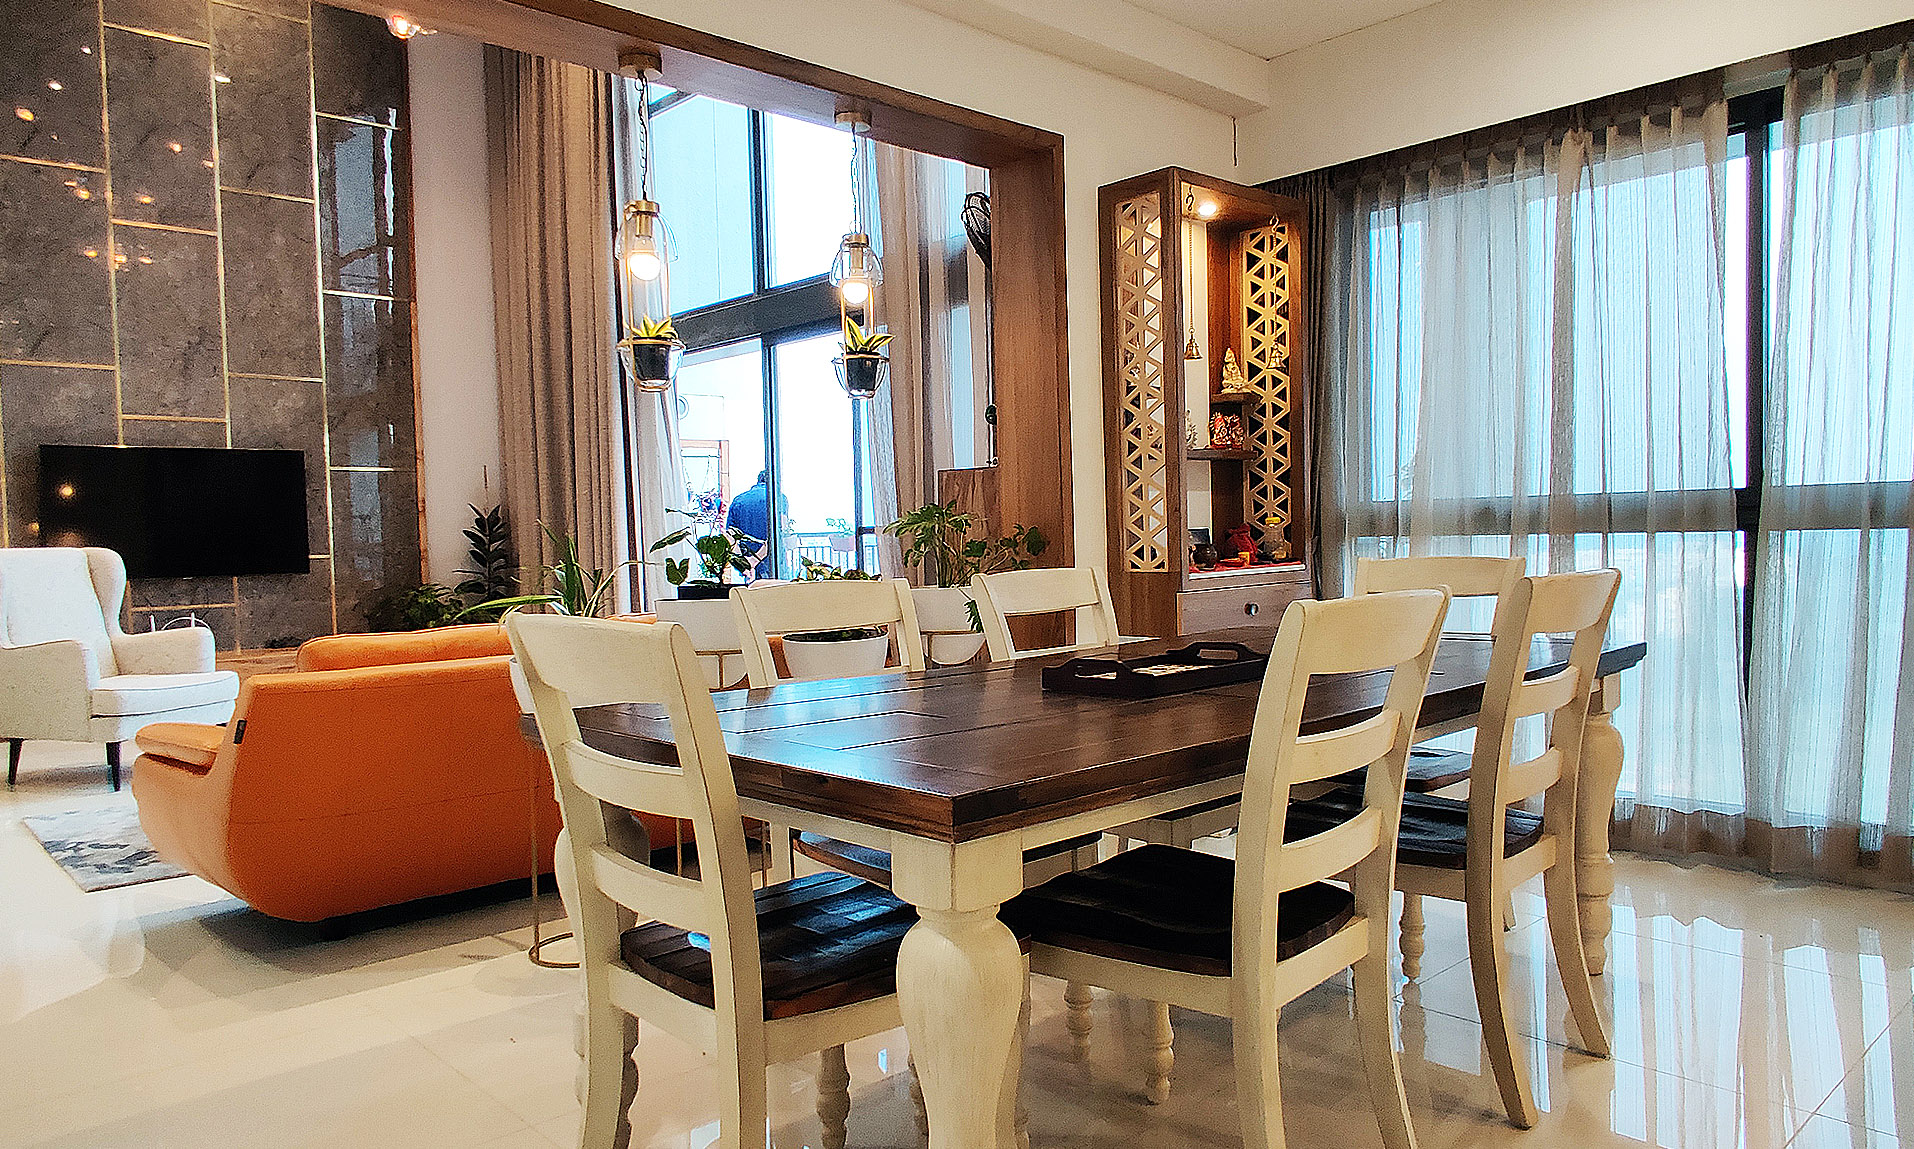 Dining table in white with a puja unit in jali